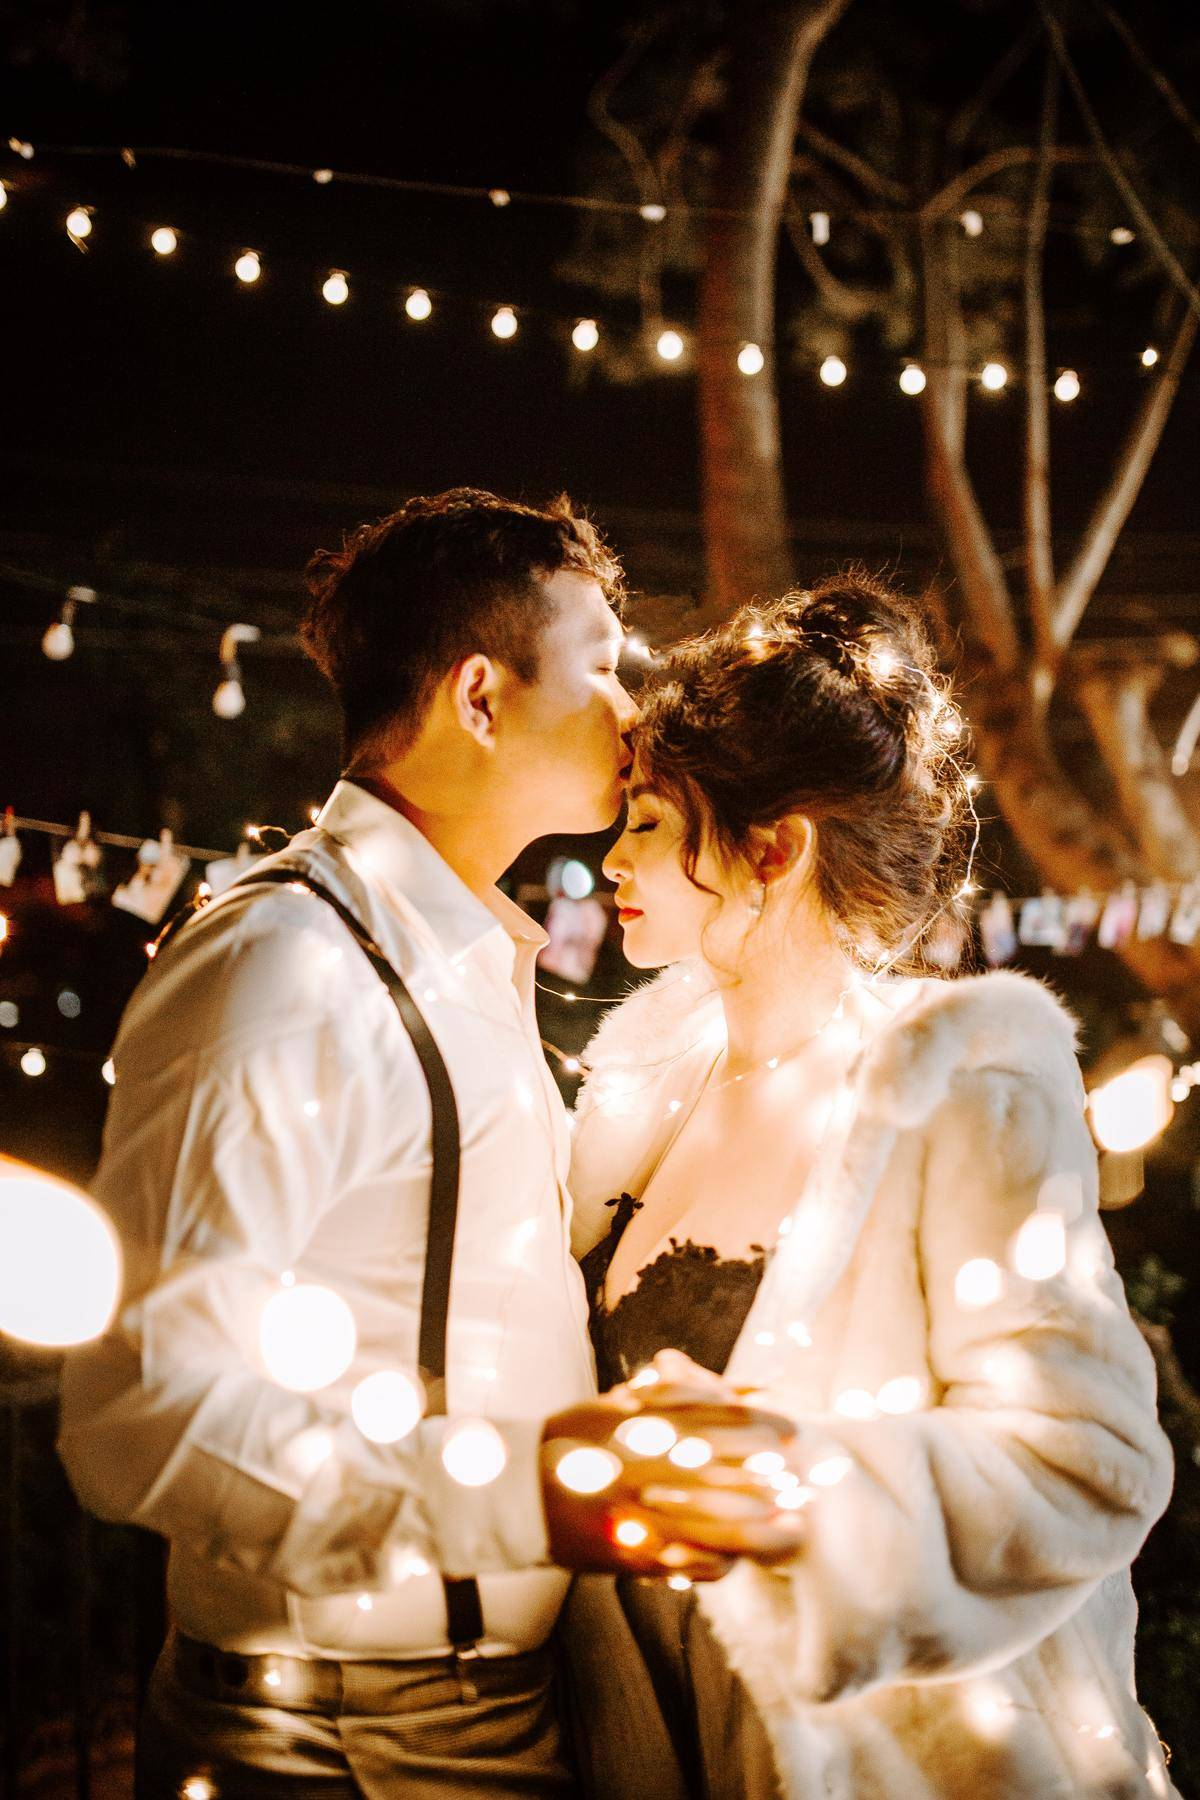 man kisses woman while slow dancing surrounded by string lights